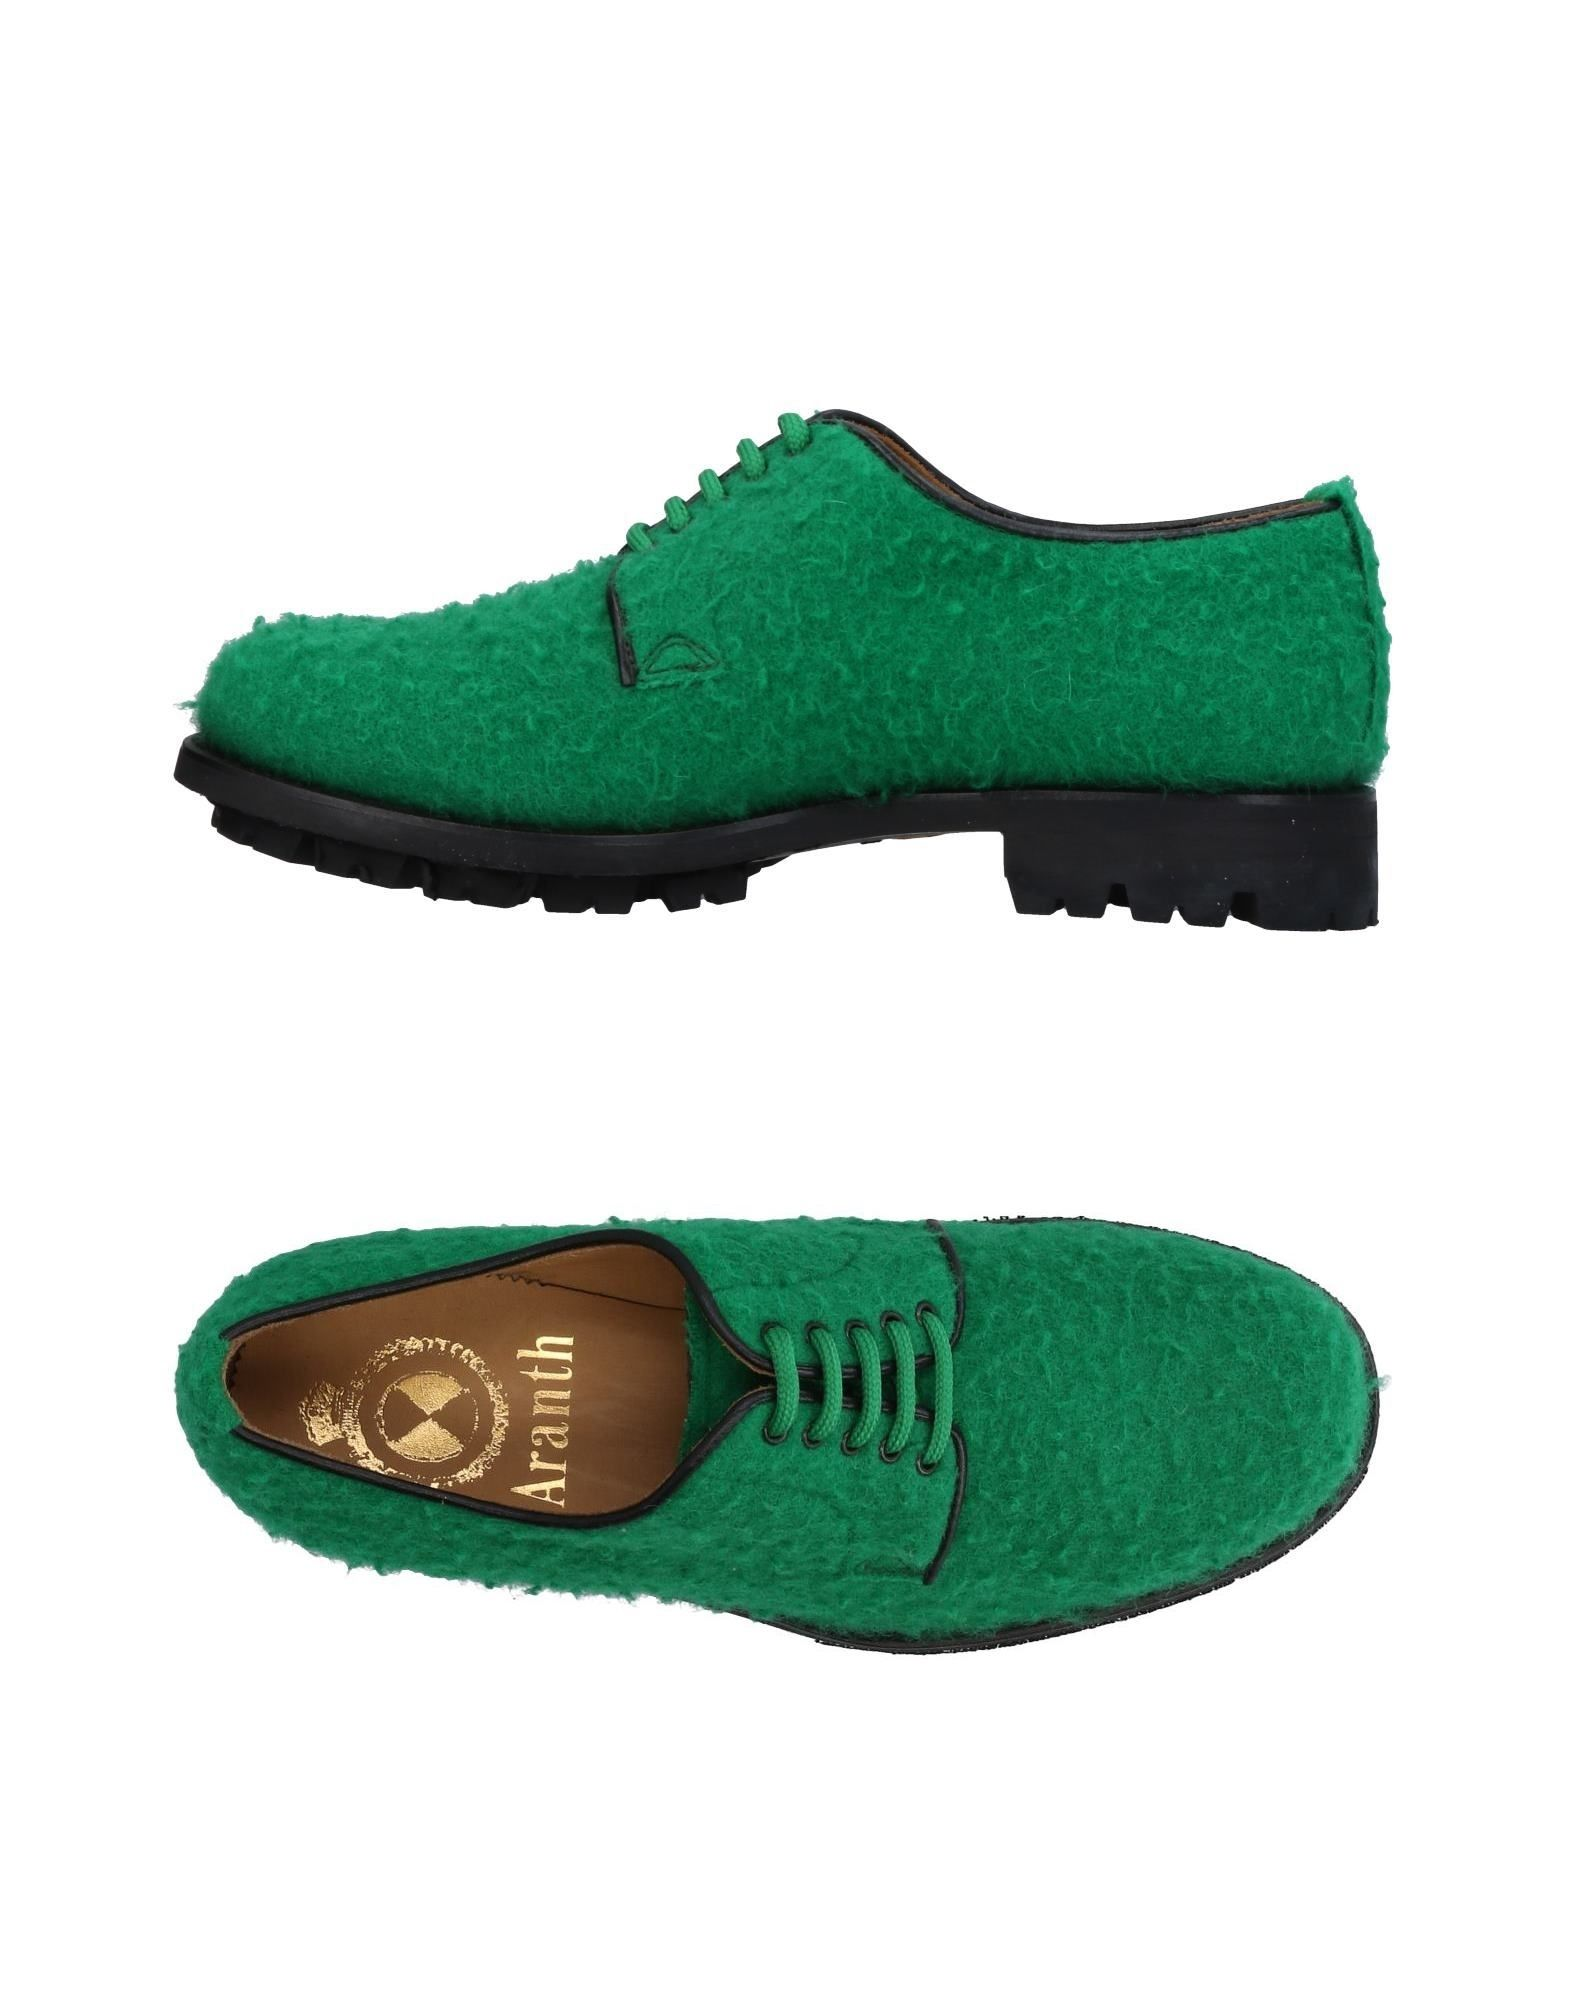 ARANTH Laced Shoes in Green